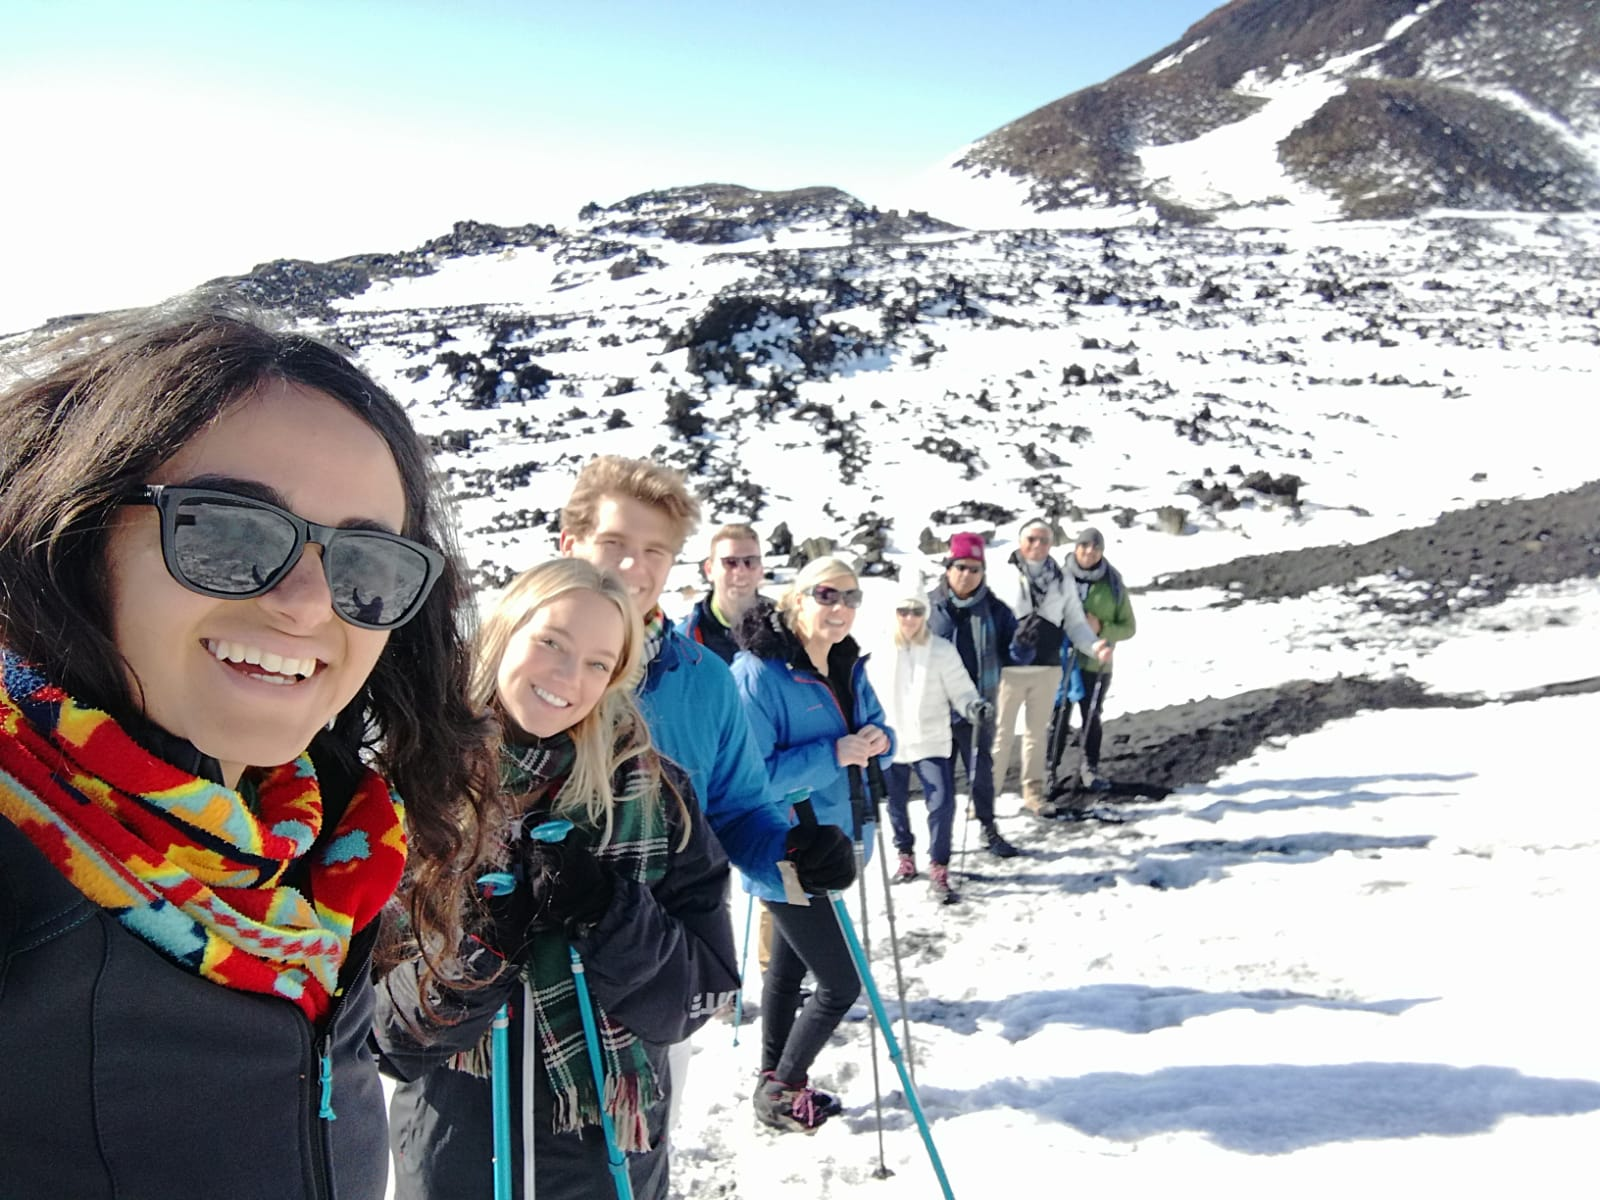 Enjoying winter on Etna trip